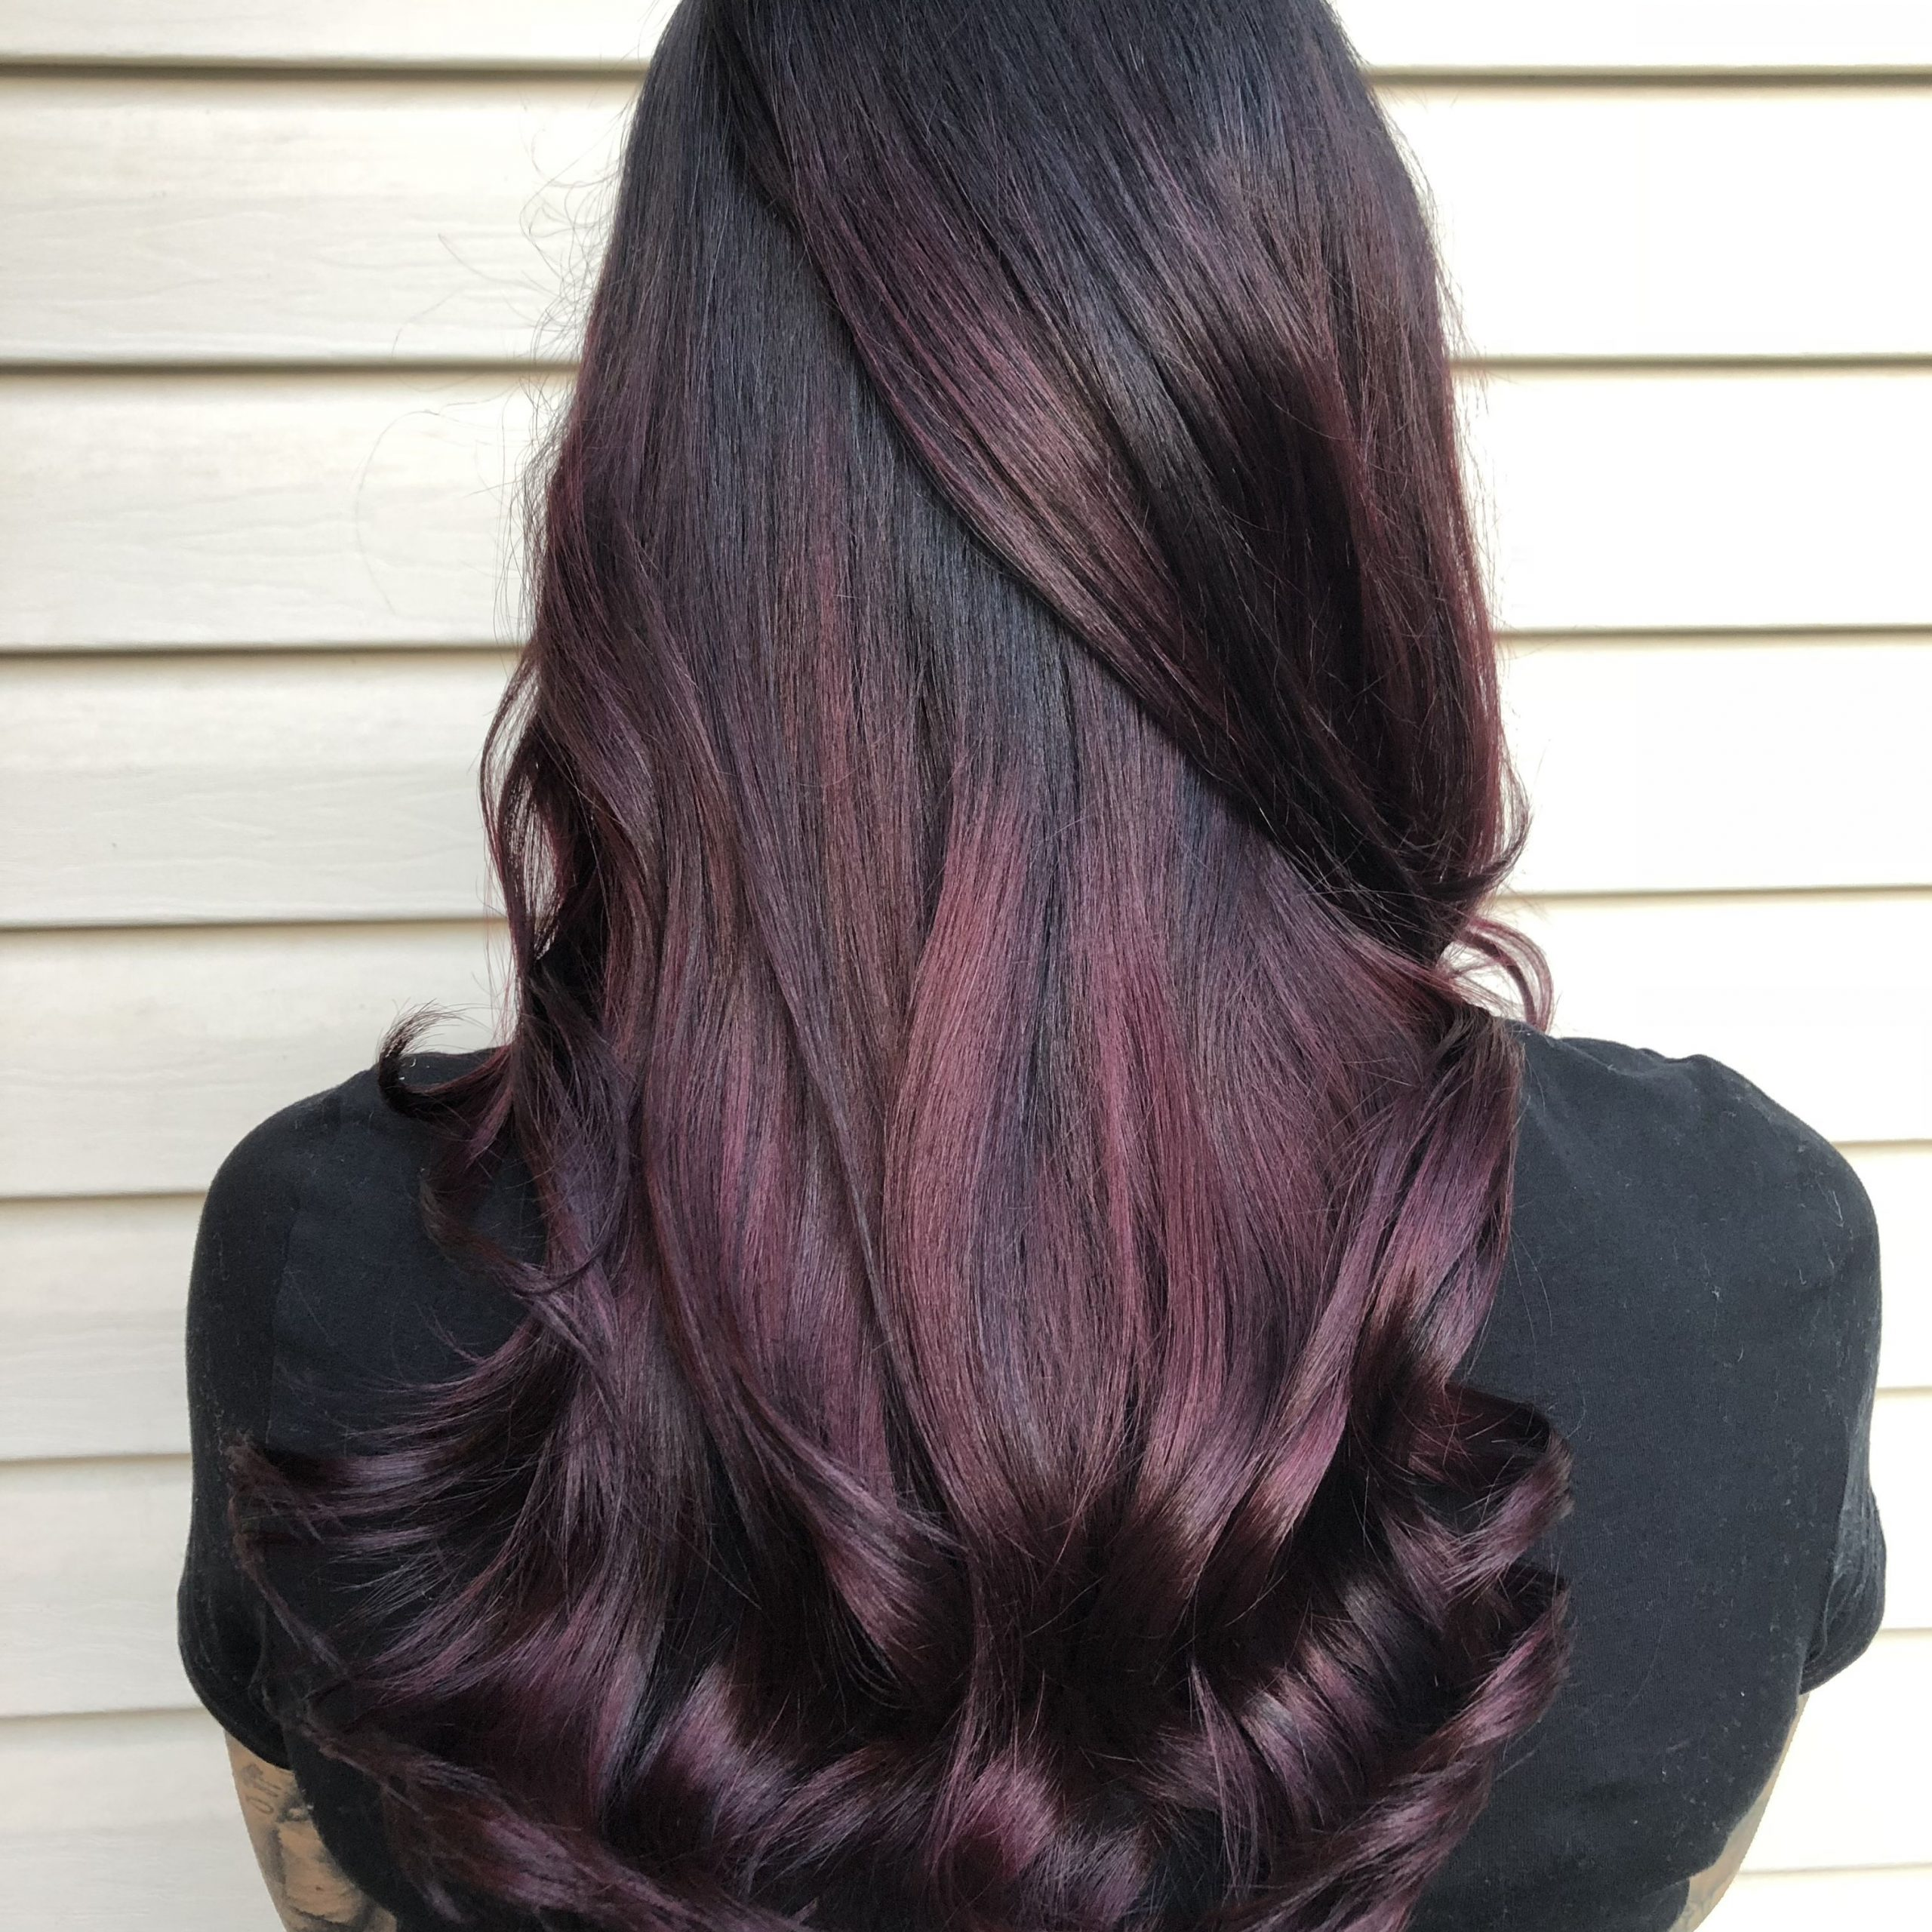 Plum Hair Balayage Ombré Purple Red Mahogany Hair Color Fall Pertaining To 2018 Plum Brown Pixie Haircuts For Naturally Curly Hair (Gallery 10 of 20)